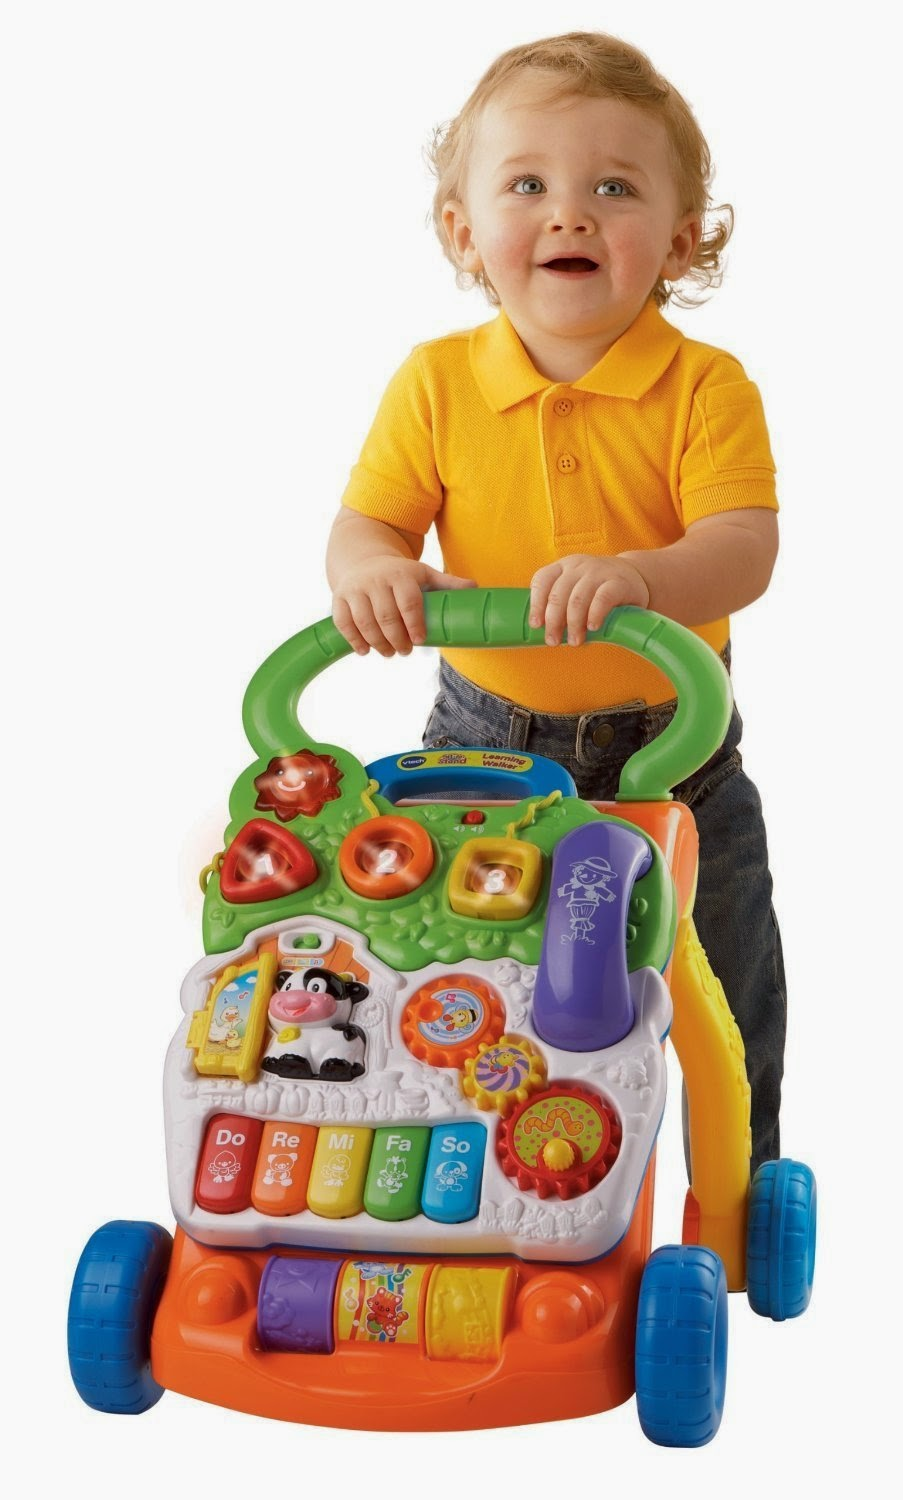 Casa Cicak S Top Children S Gifts Top Toys For A 12 Month